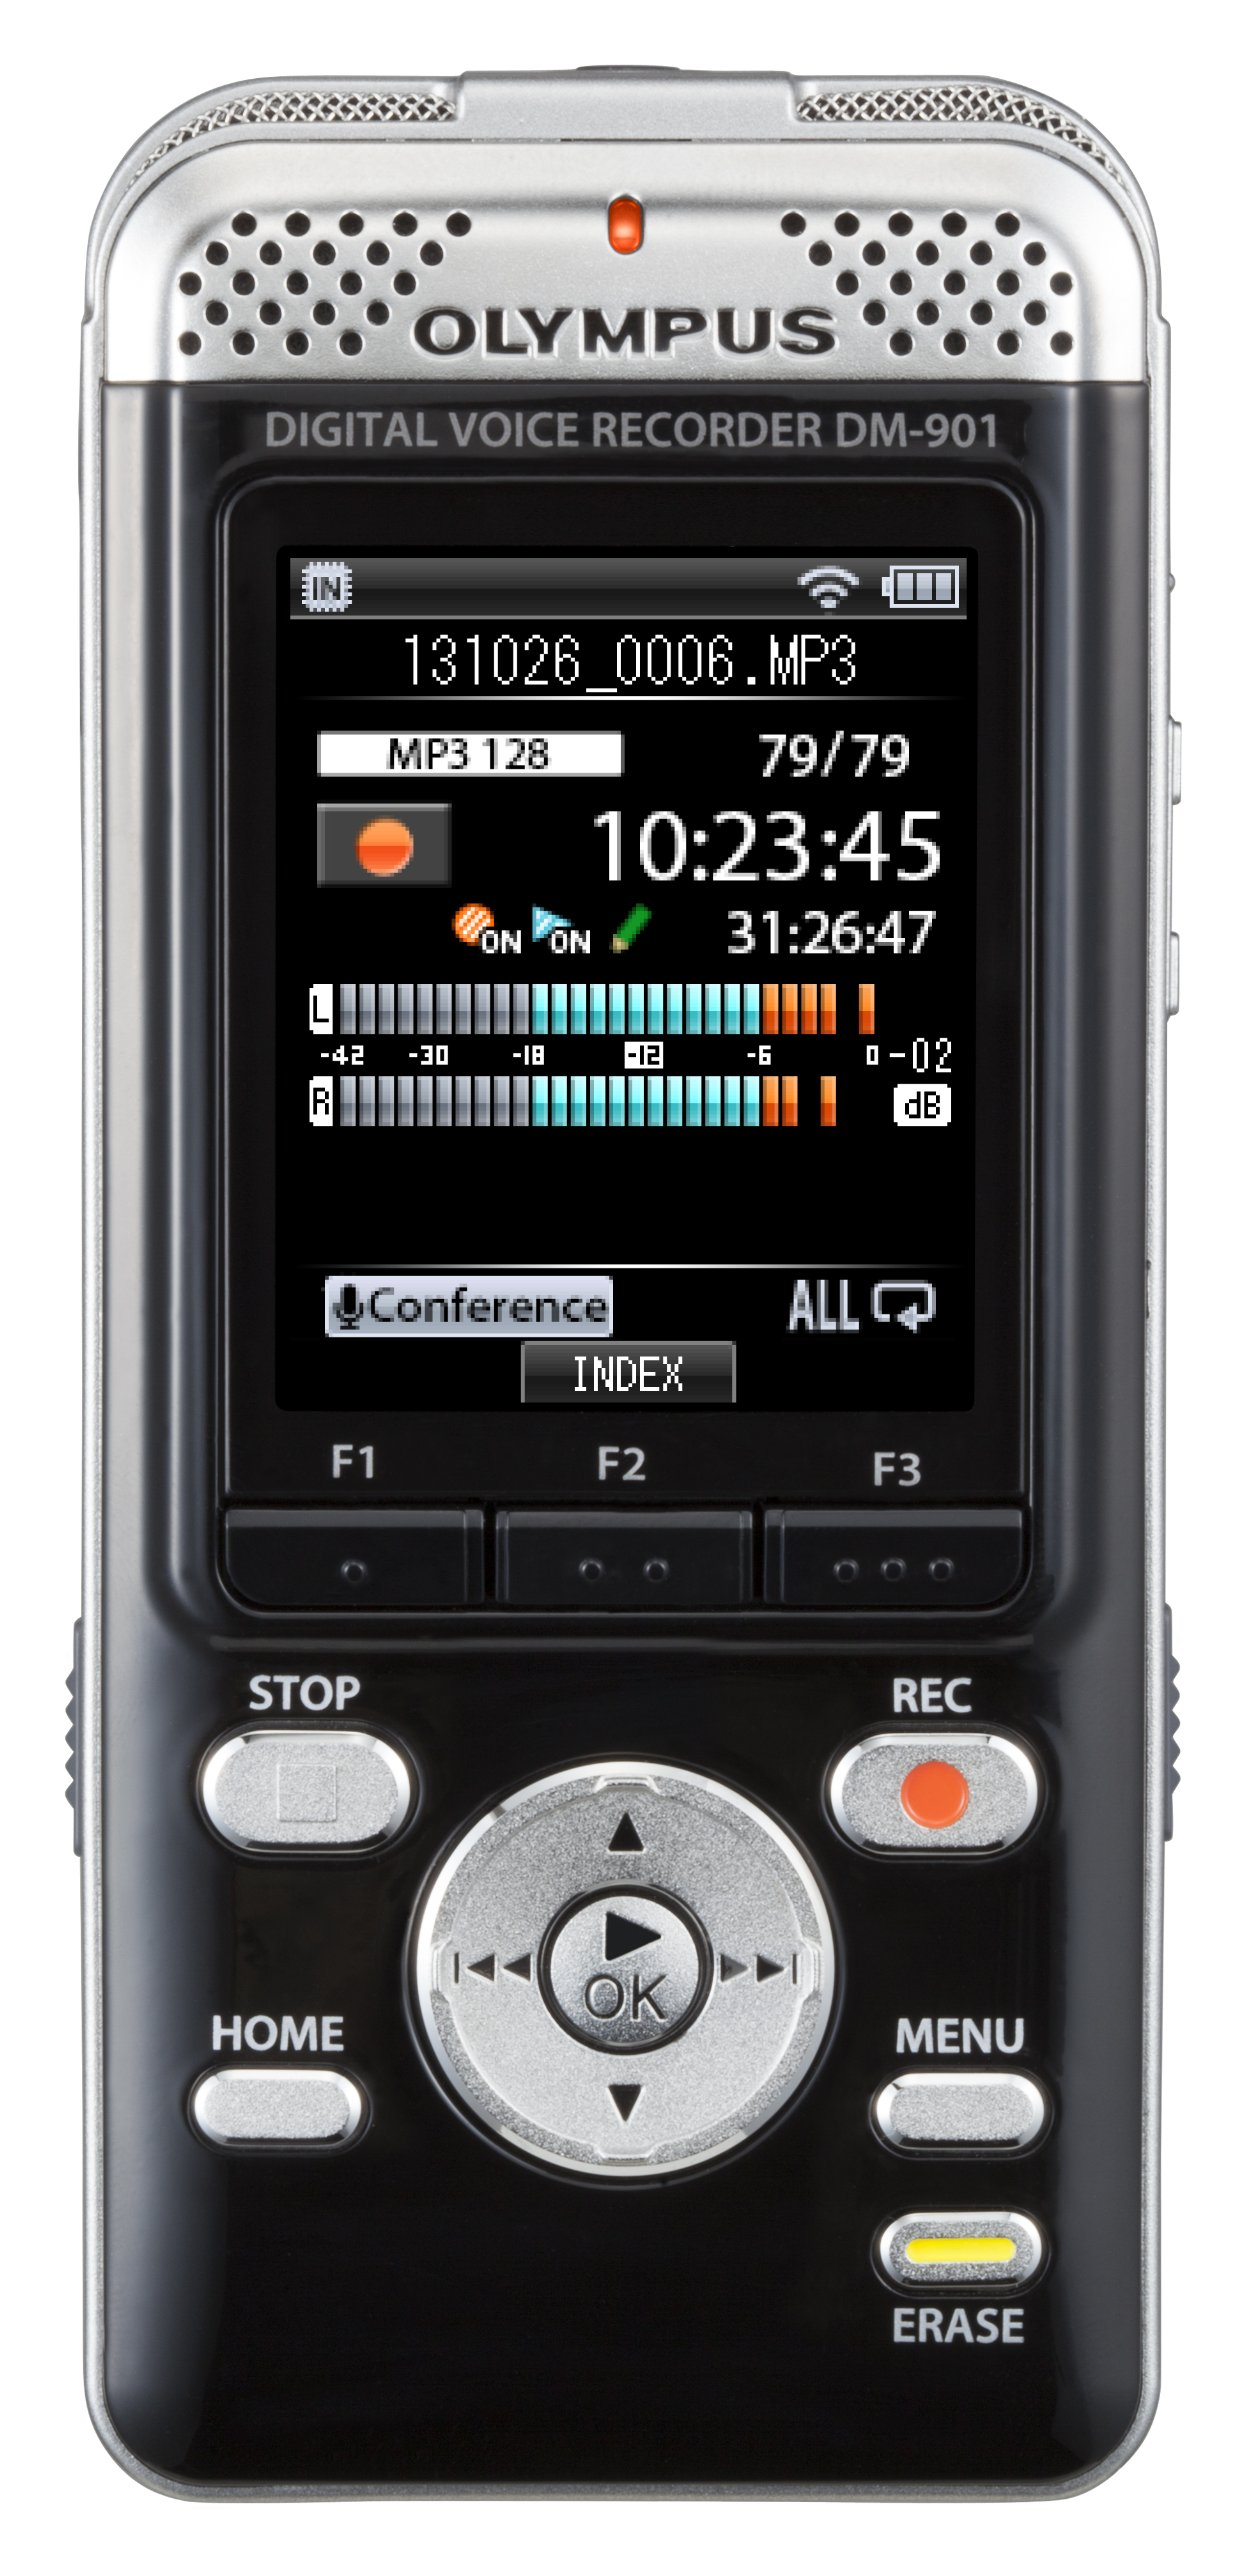 Olympus DM-901 Voice Recorder with 4 GB Built-In-Memory